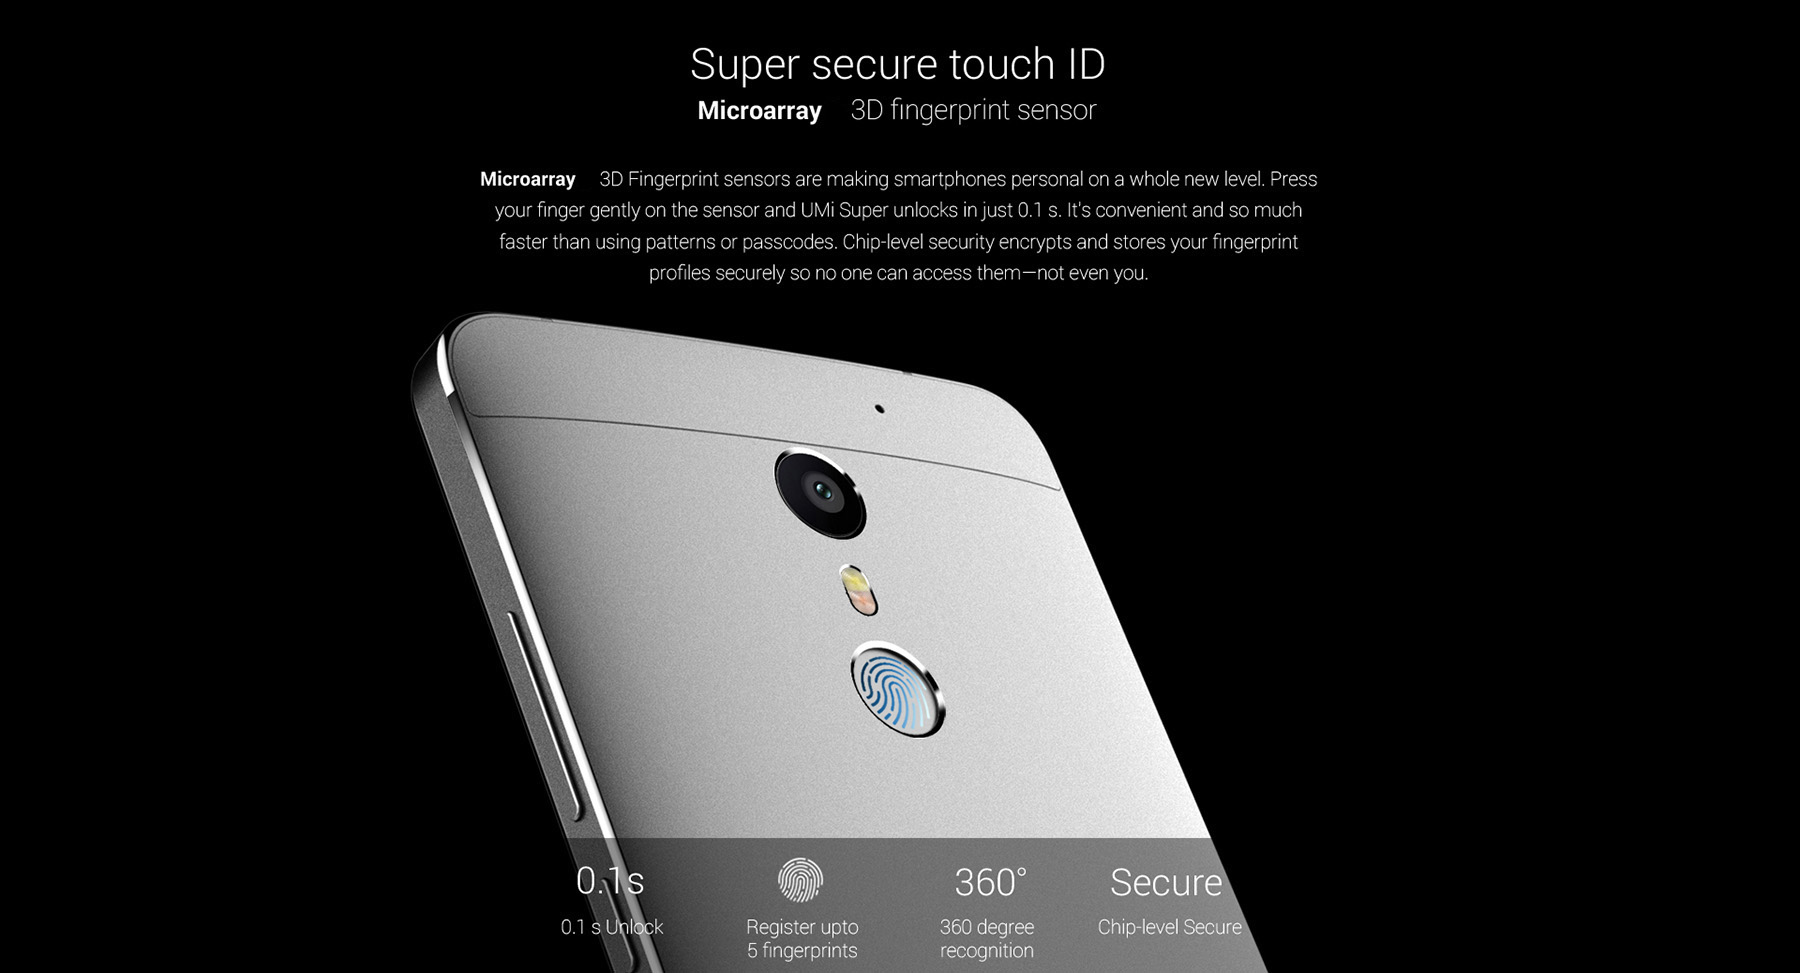 UMI Super 5.5 inch 2.5D Arc Screen 4G Phablet Android 6.0 Helio P10 64bit Octa Core 2.0GHz 4GB RAM 32GB ROM 5MP + 13MP Cameras Fingerprint Scanner OTG Type-C HiFi